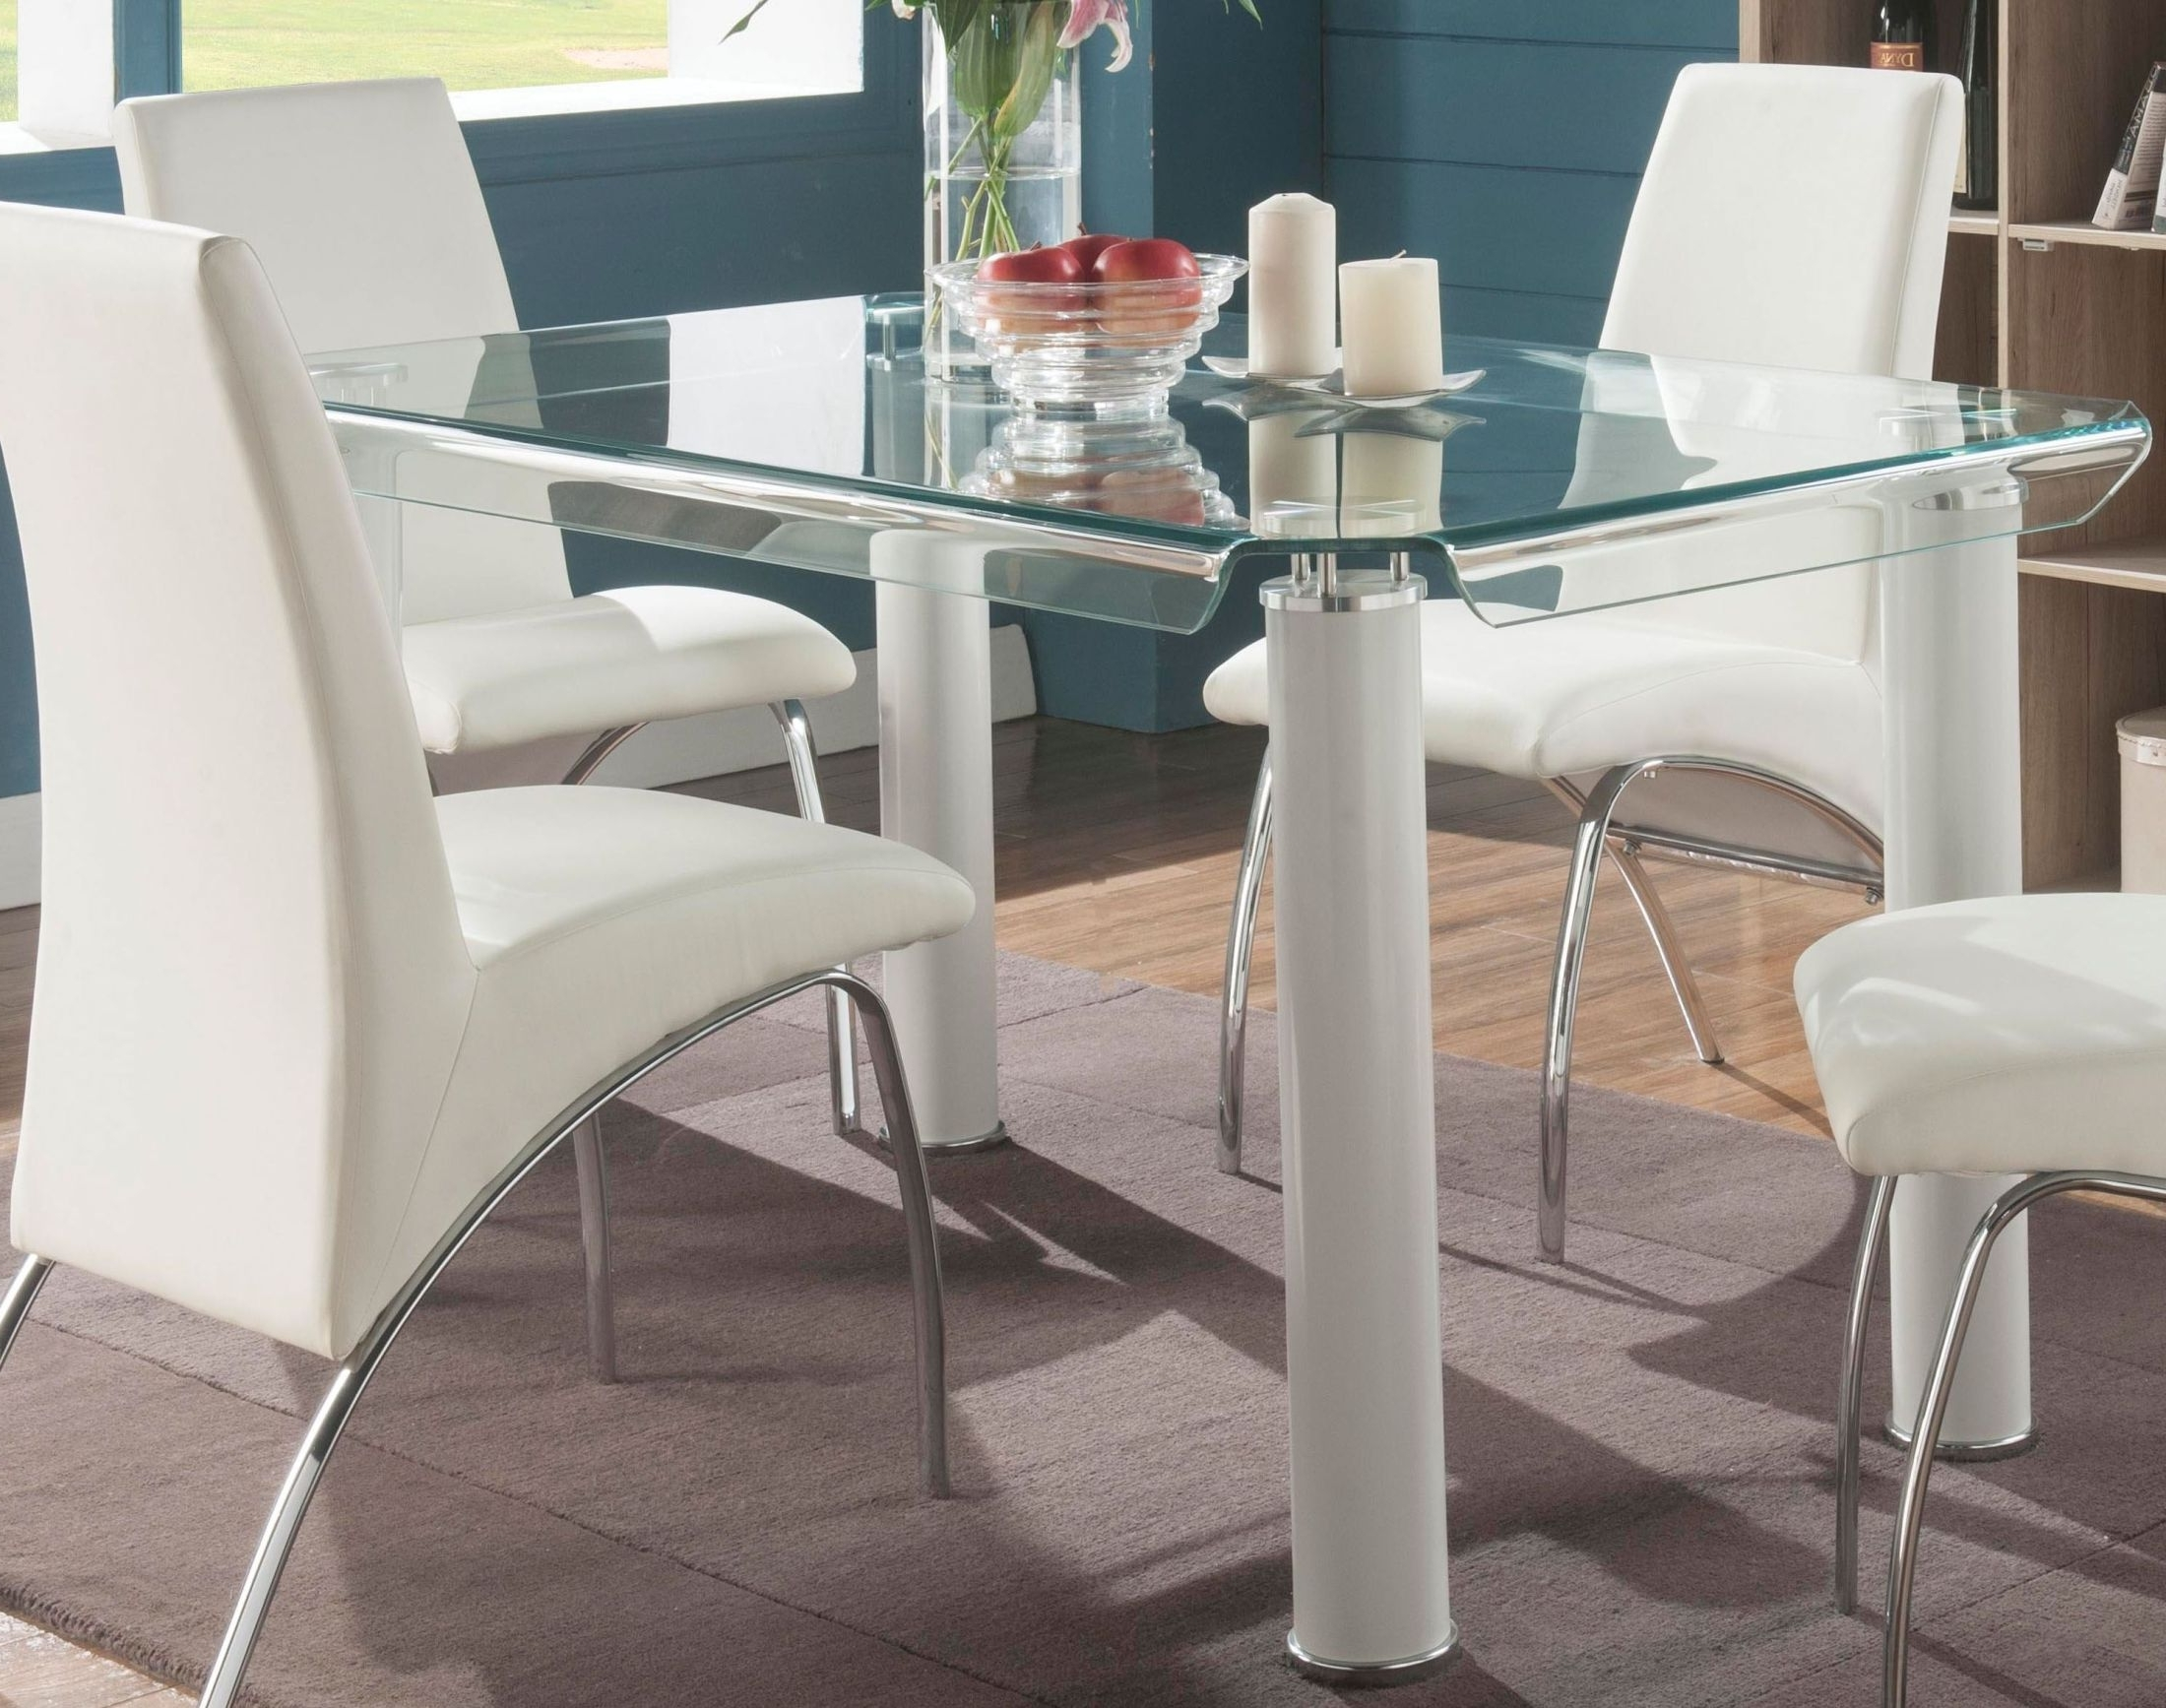 Acme Gordie White And Clear Glass Dining Table – Gordie Collection In Most Current Glass Dining Tables White Chairs (Gallery 23 of 25)